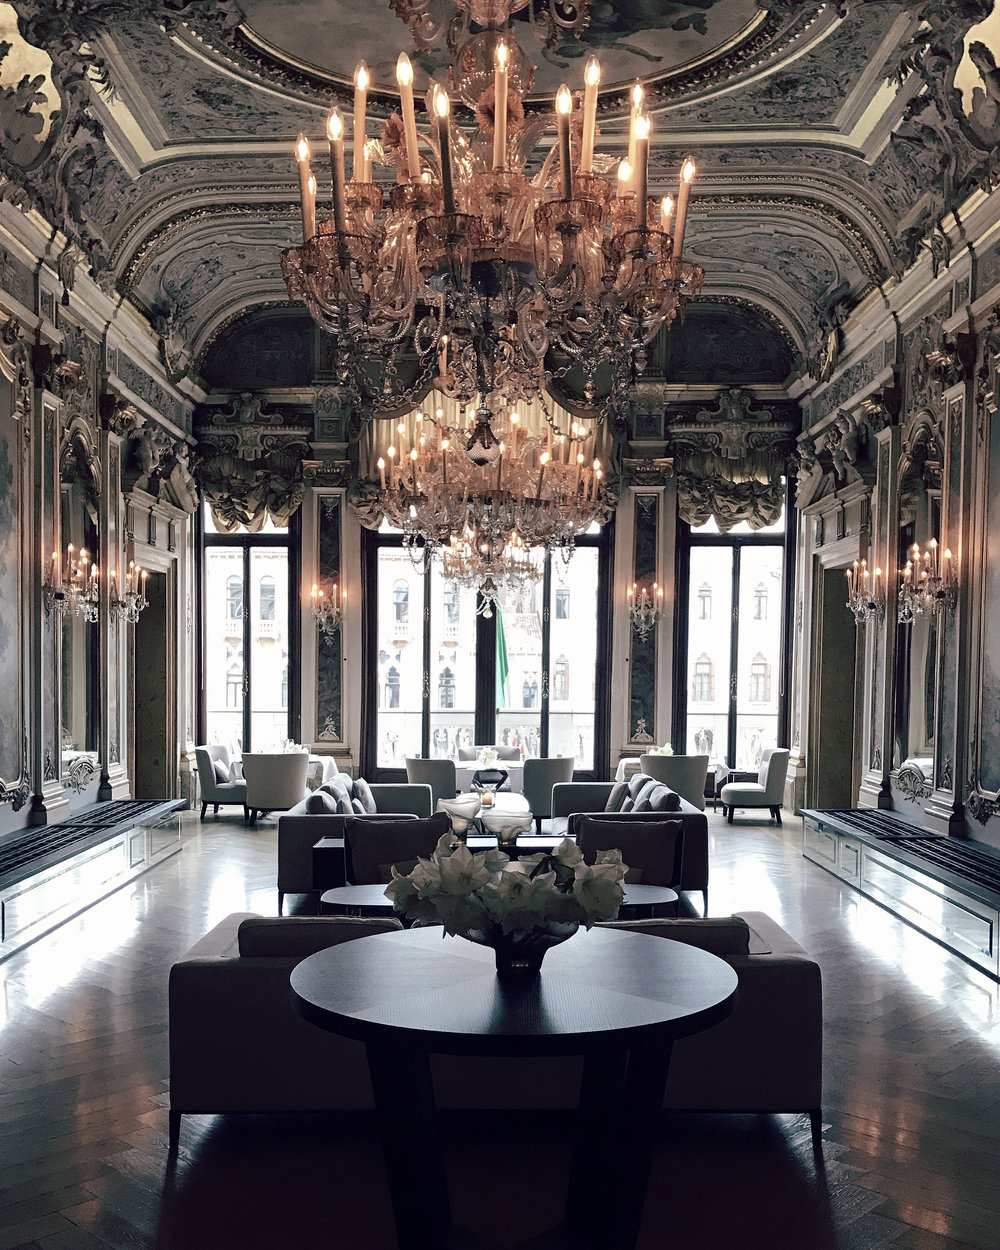 Aman Venice  – set in the 16th-century palazzo Papadopoli on the Grand Canal – is home to museum-quality treasures including Tiepolo frescoes, gilded ceilings and centuries-old leather wall coverings.Thus it comes as no surprise that George Clooney and Amal Alamuddin have chosen this 7 star Grande Hotel as the location for their celebrity-studded wedding.